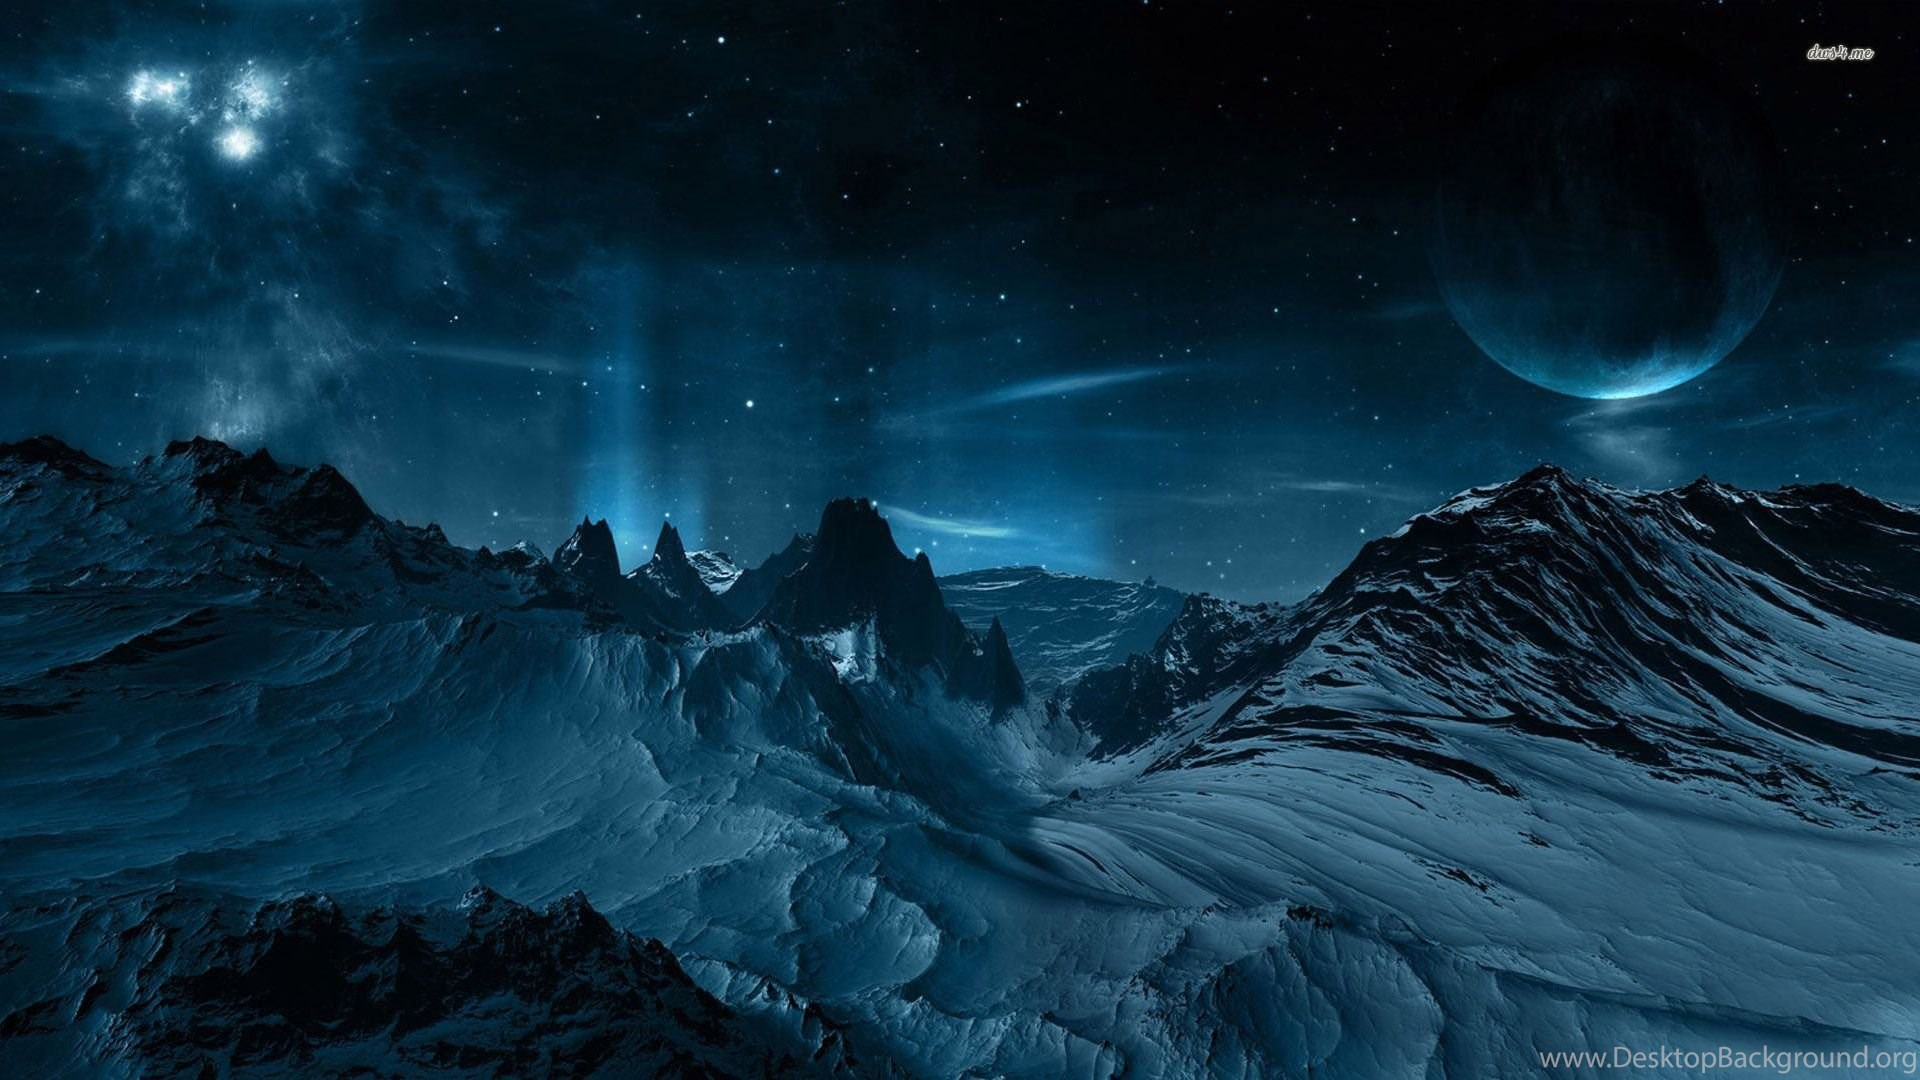 Night Sky Mountain Snow Star Moon Fantasy 1920x1080 Hd